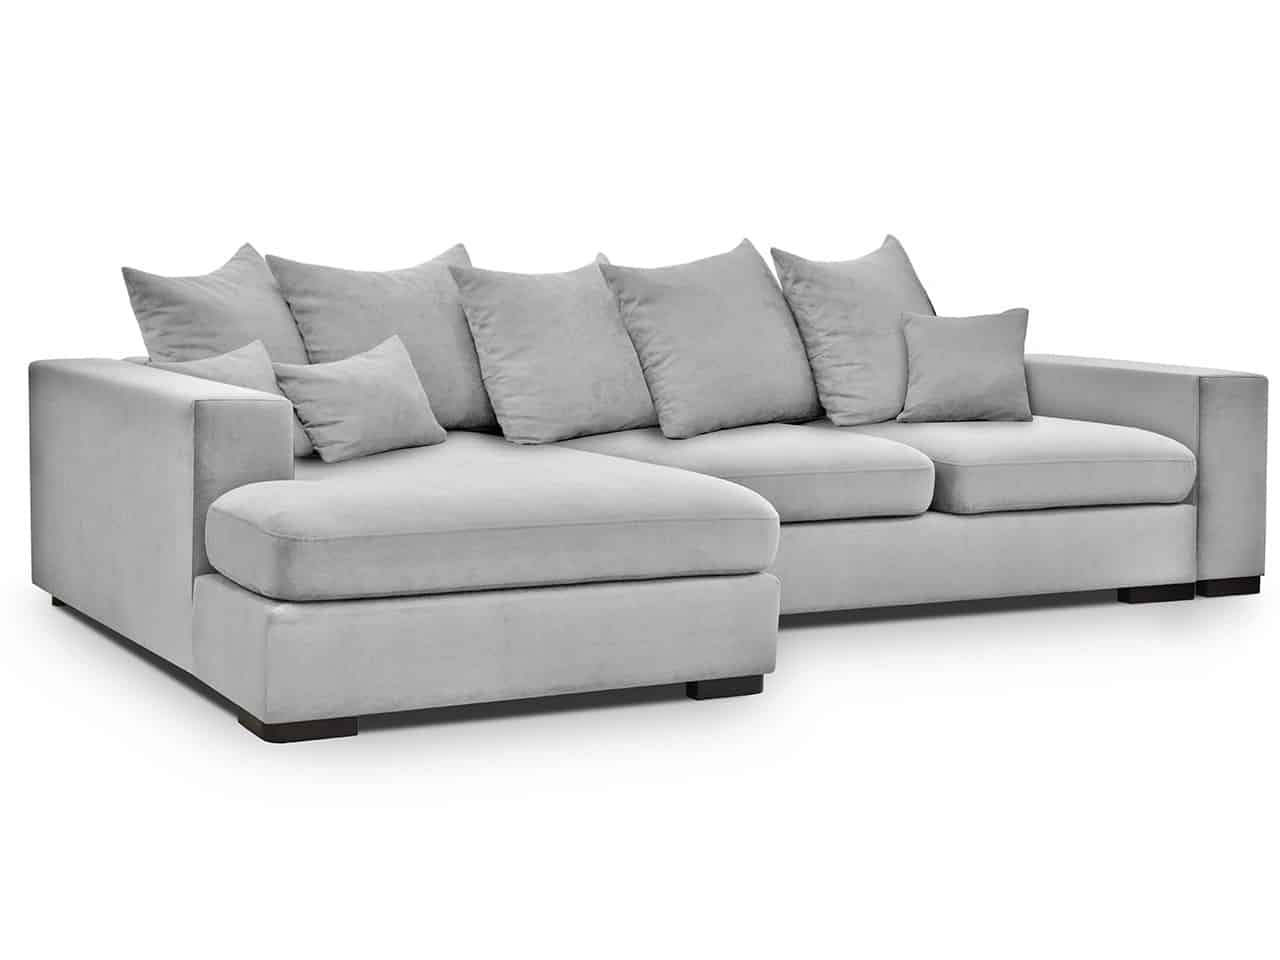 Picture of: Hamilton Chaiselong Sovesofa Med En Blod Komfort